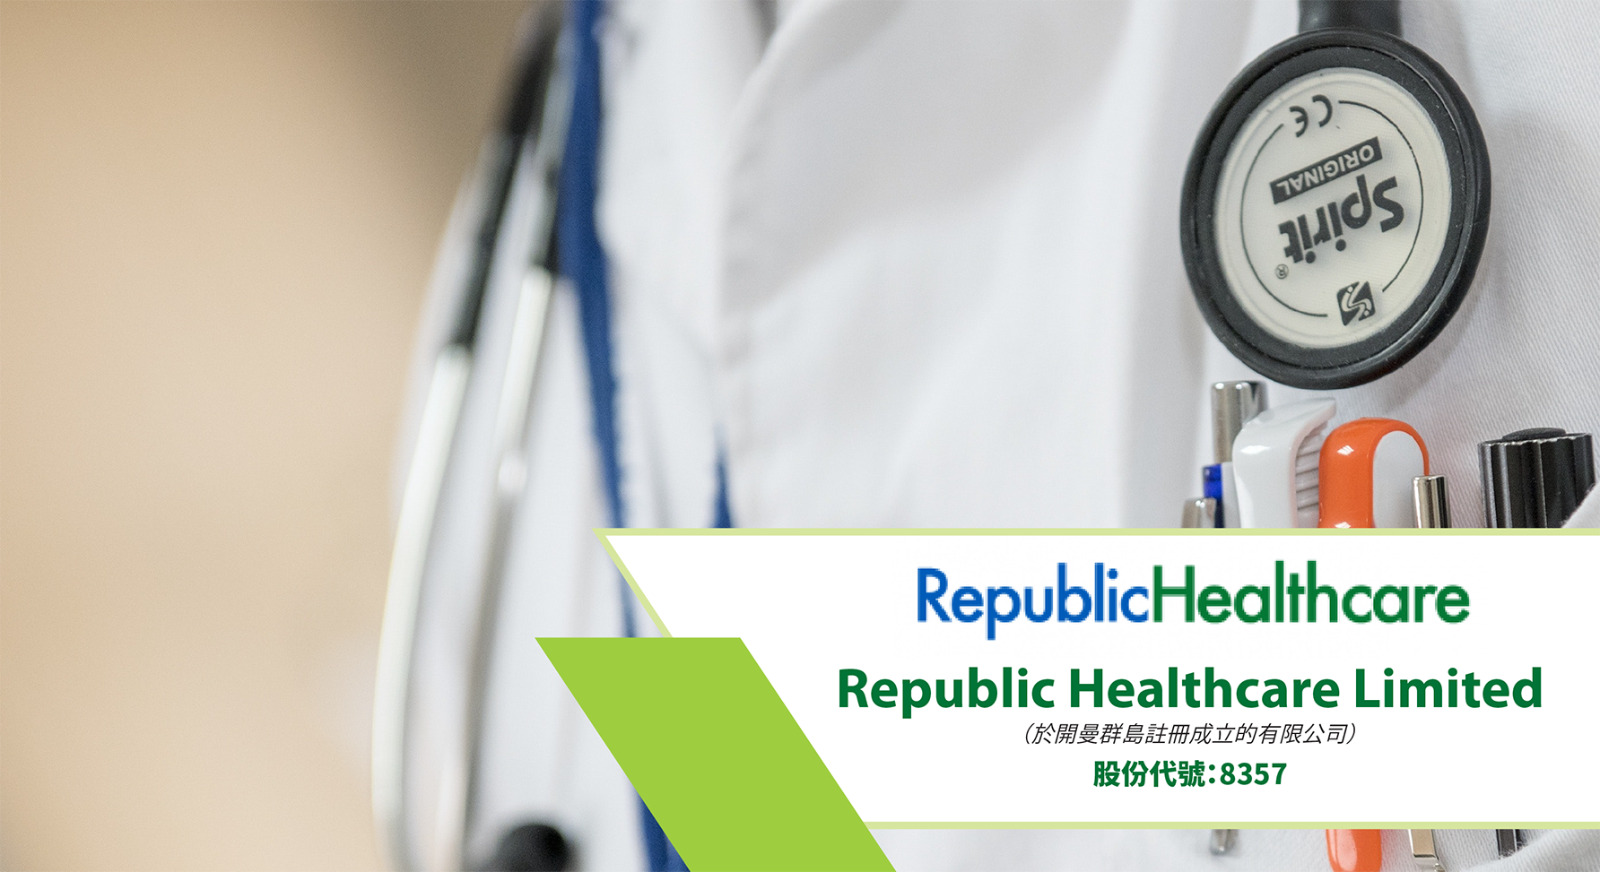 股票 REPUBLICHC 8357 RepublicHealthcare 健康護理服務 Dr.Tan&Partners DTAP SAesthetics 天泰金融服務 陳致暹